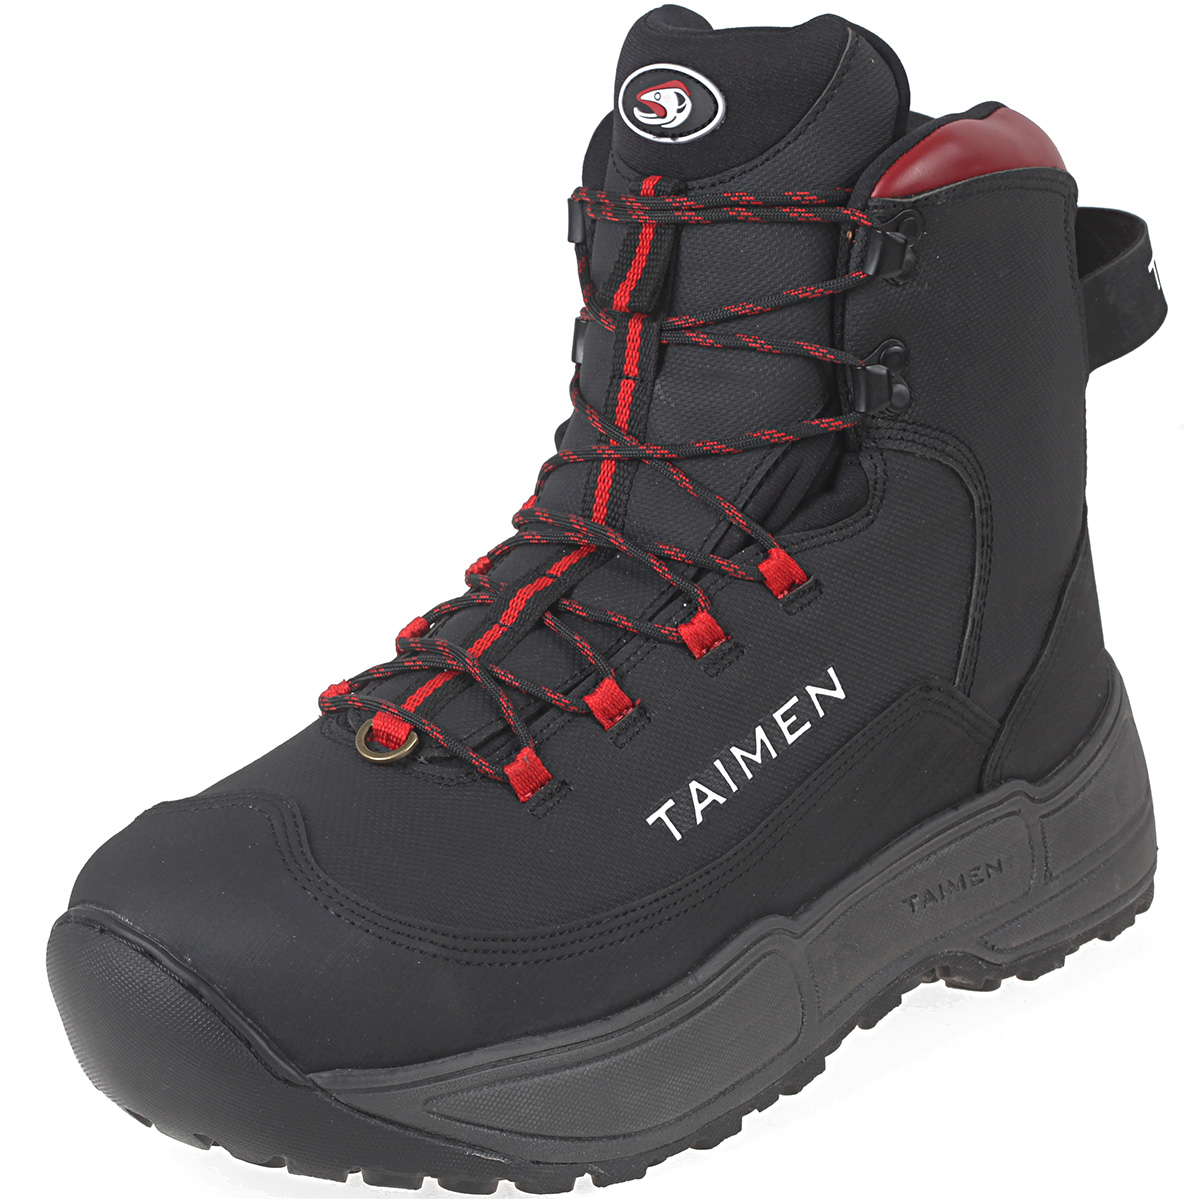 Taimen onon wading boots fishing wading boots ebay for Fishing waders with boots